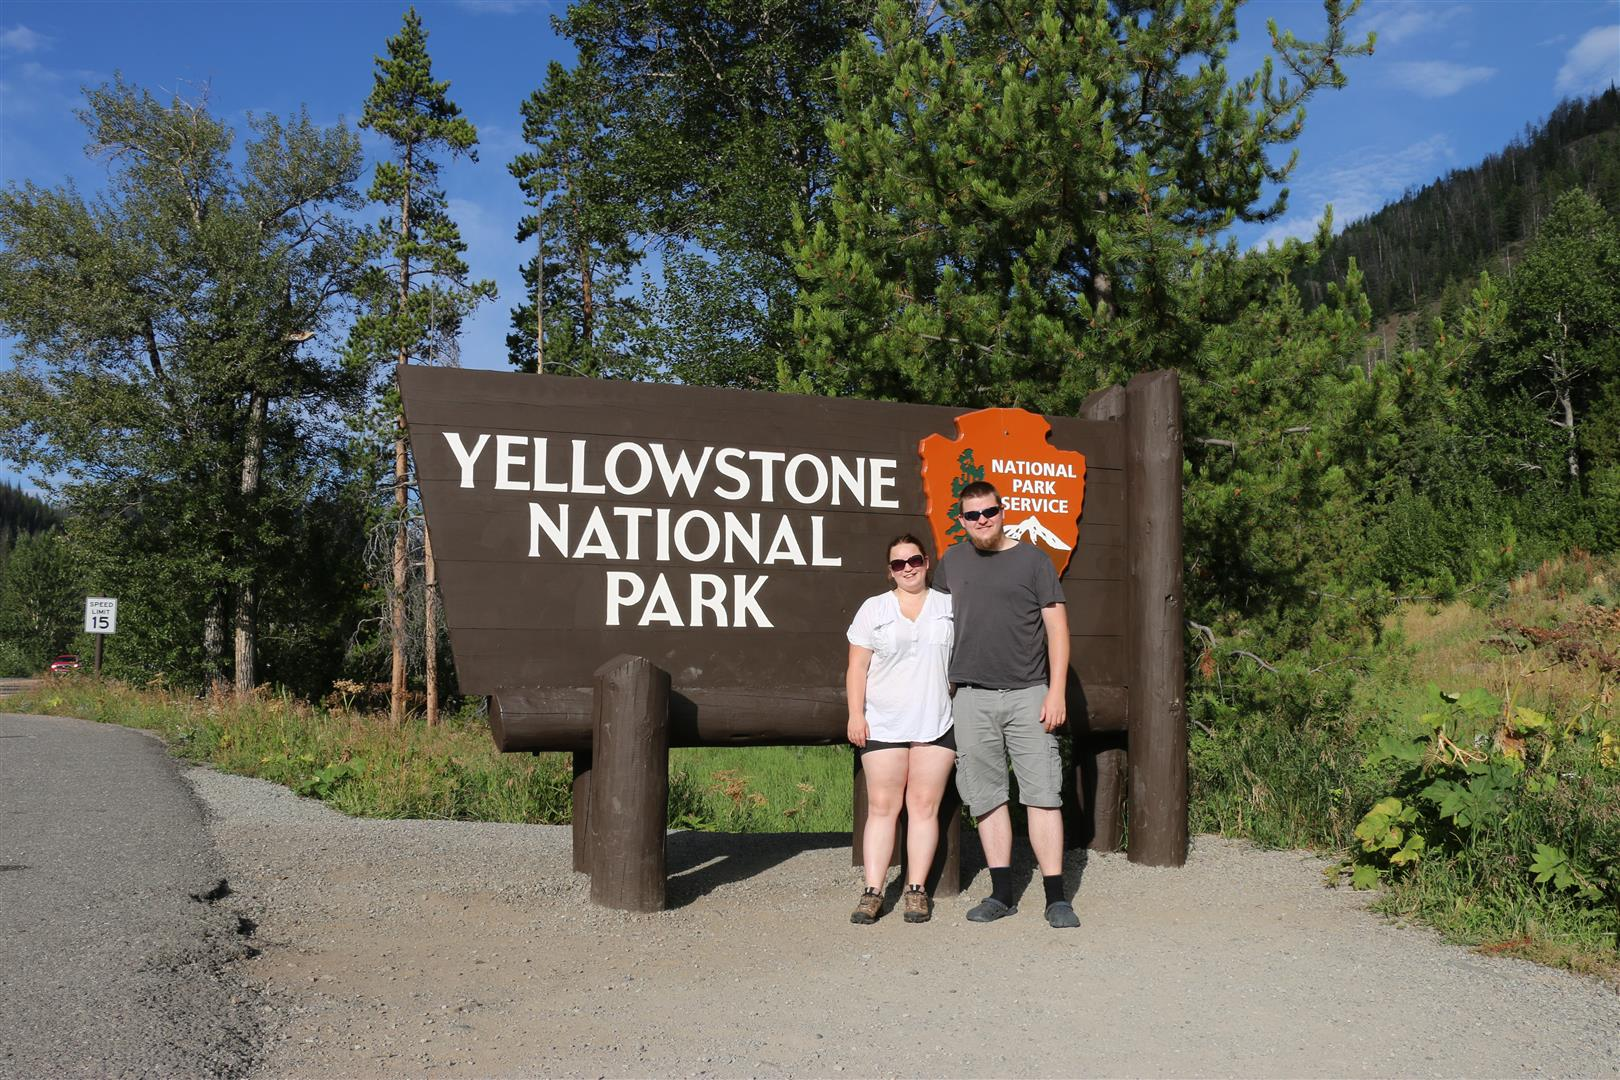 Entering Yellowstone NP